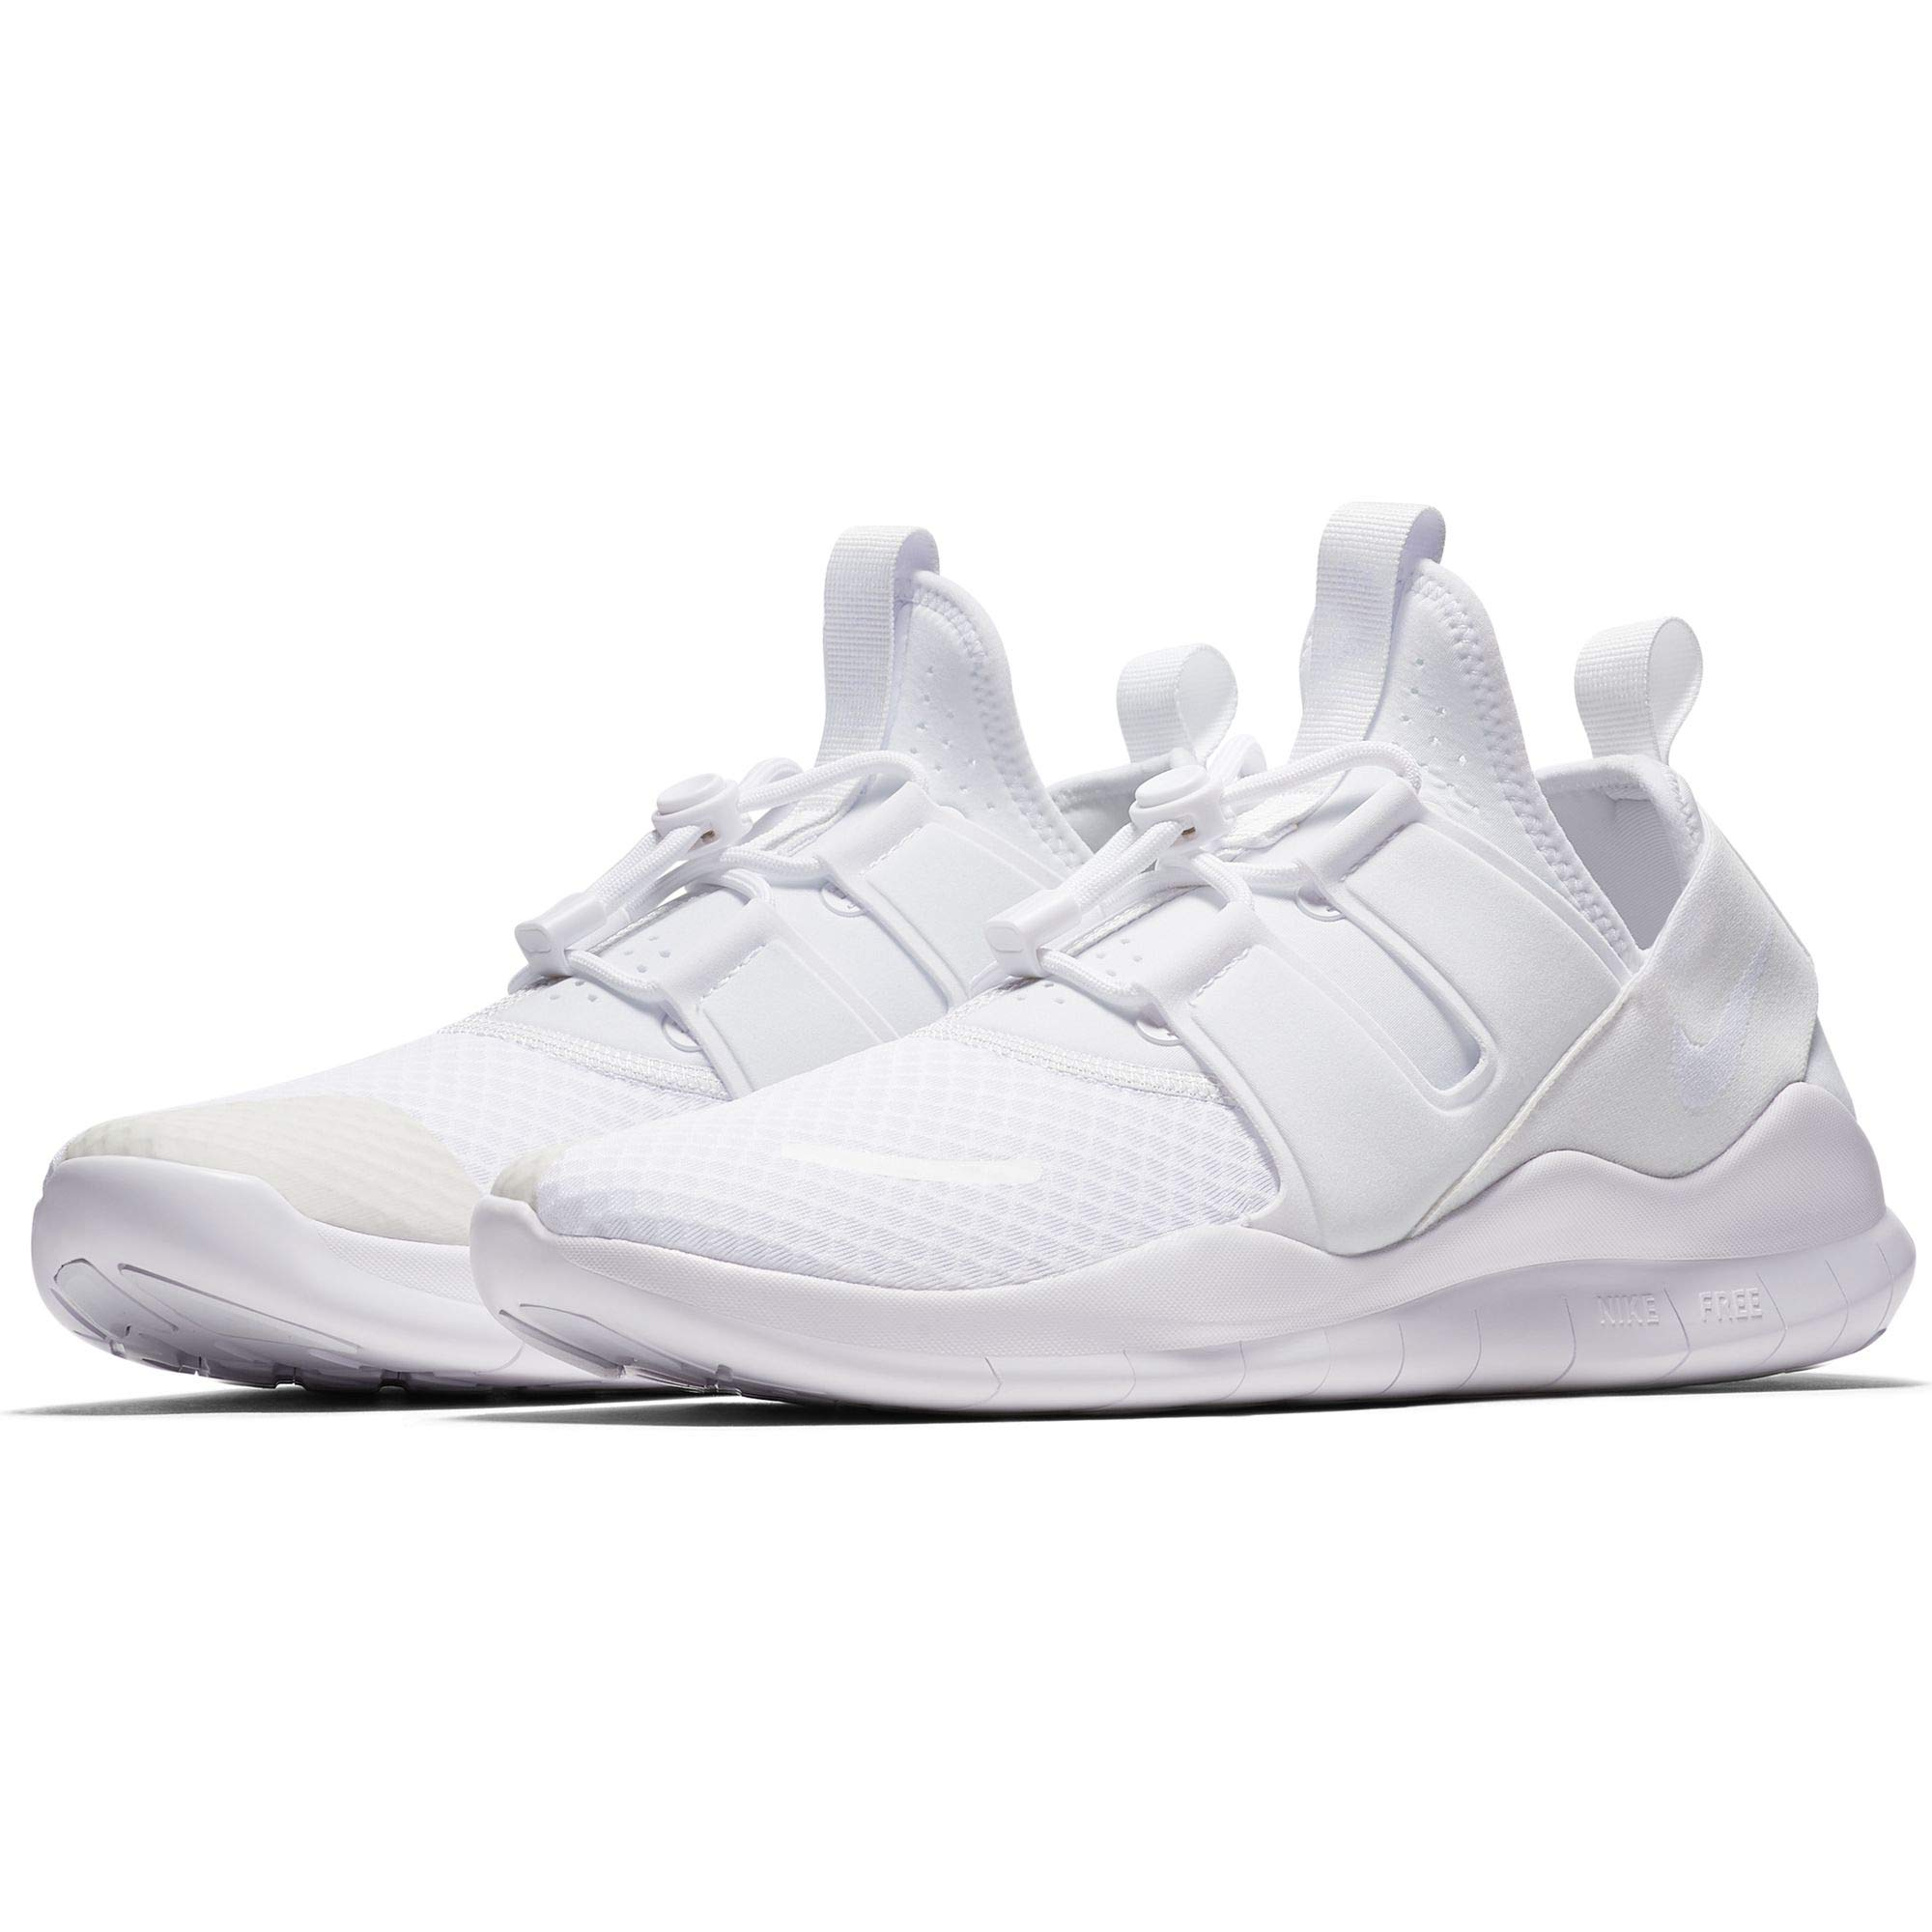 72c4507e48ad Galleon - Nike Men s Free RN Commuter 2018 White Summit White Size 9 M US